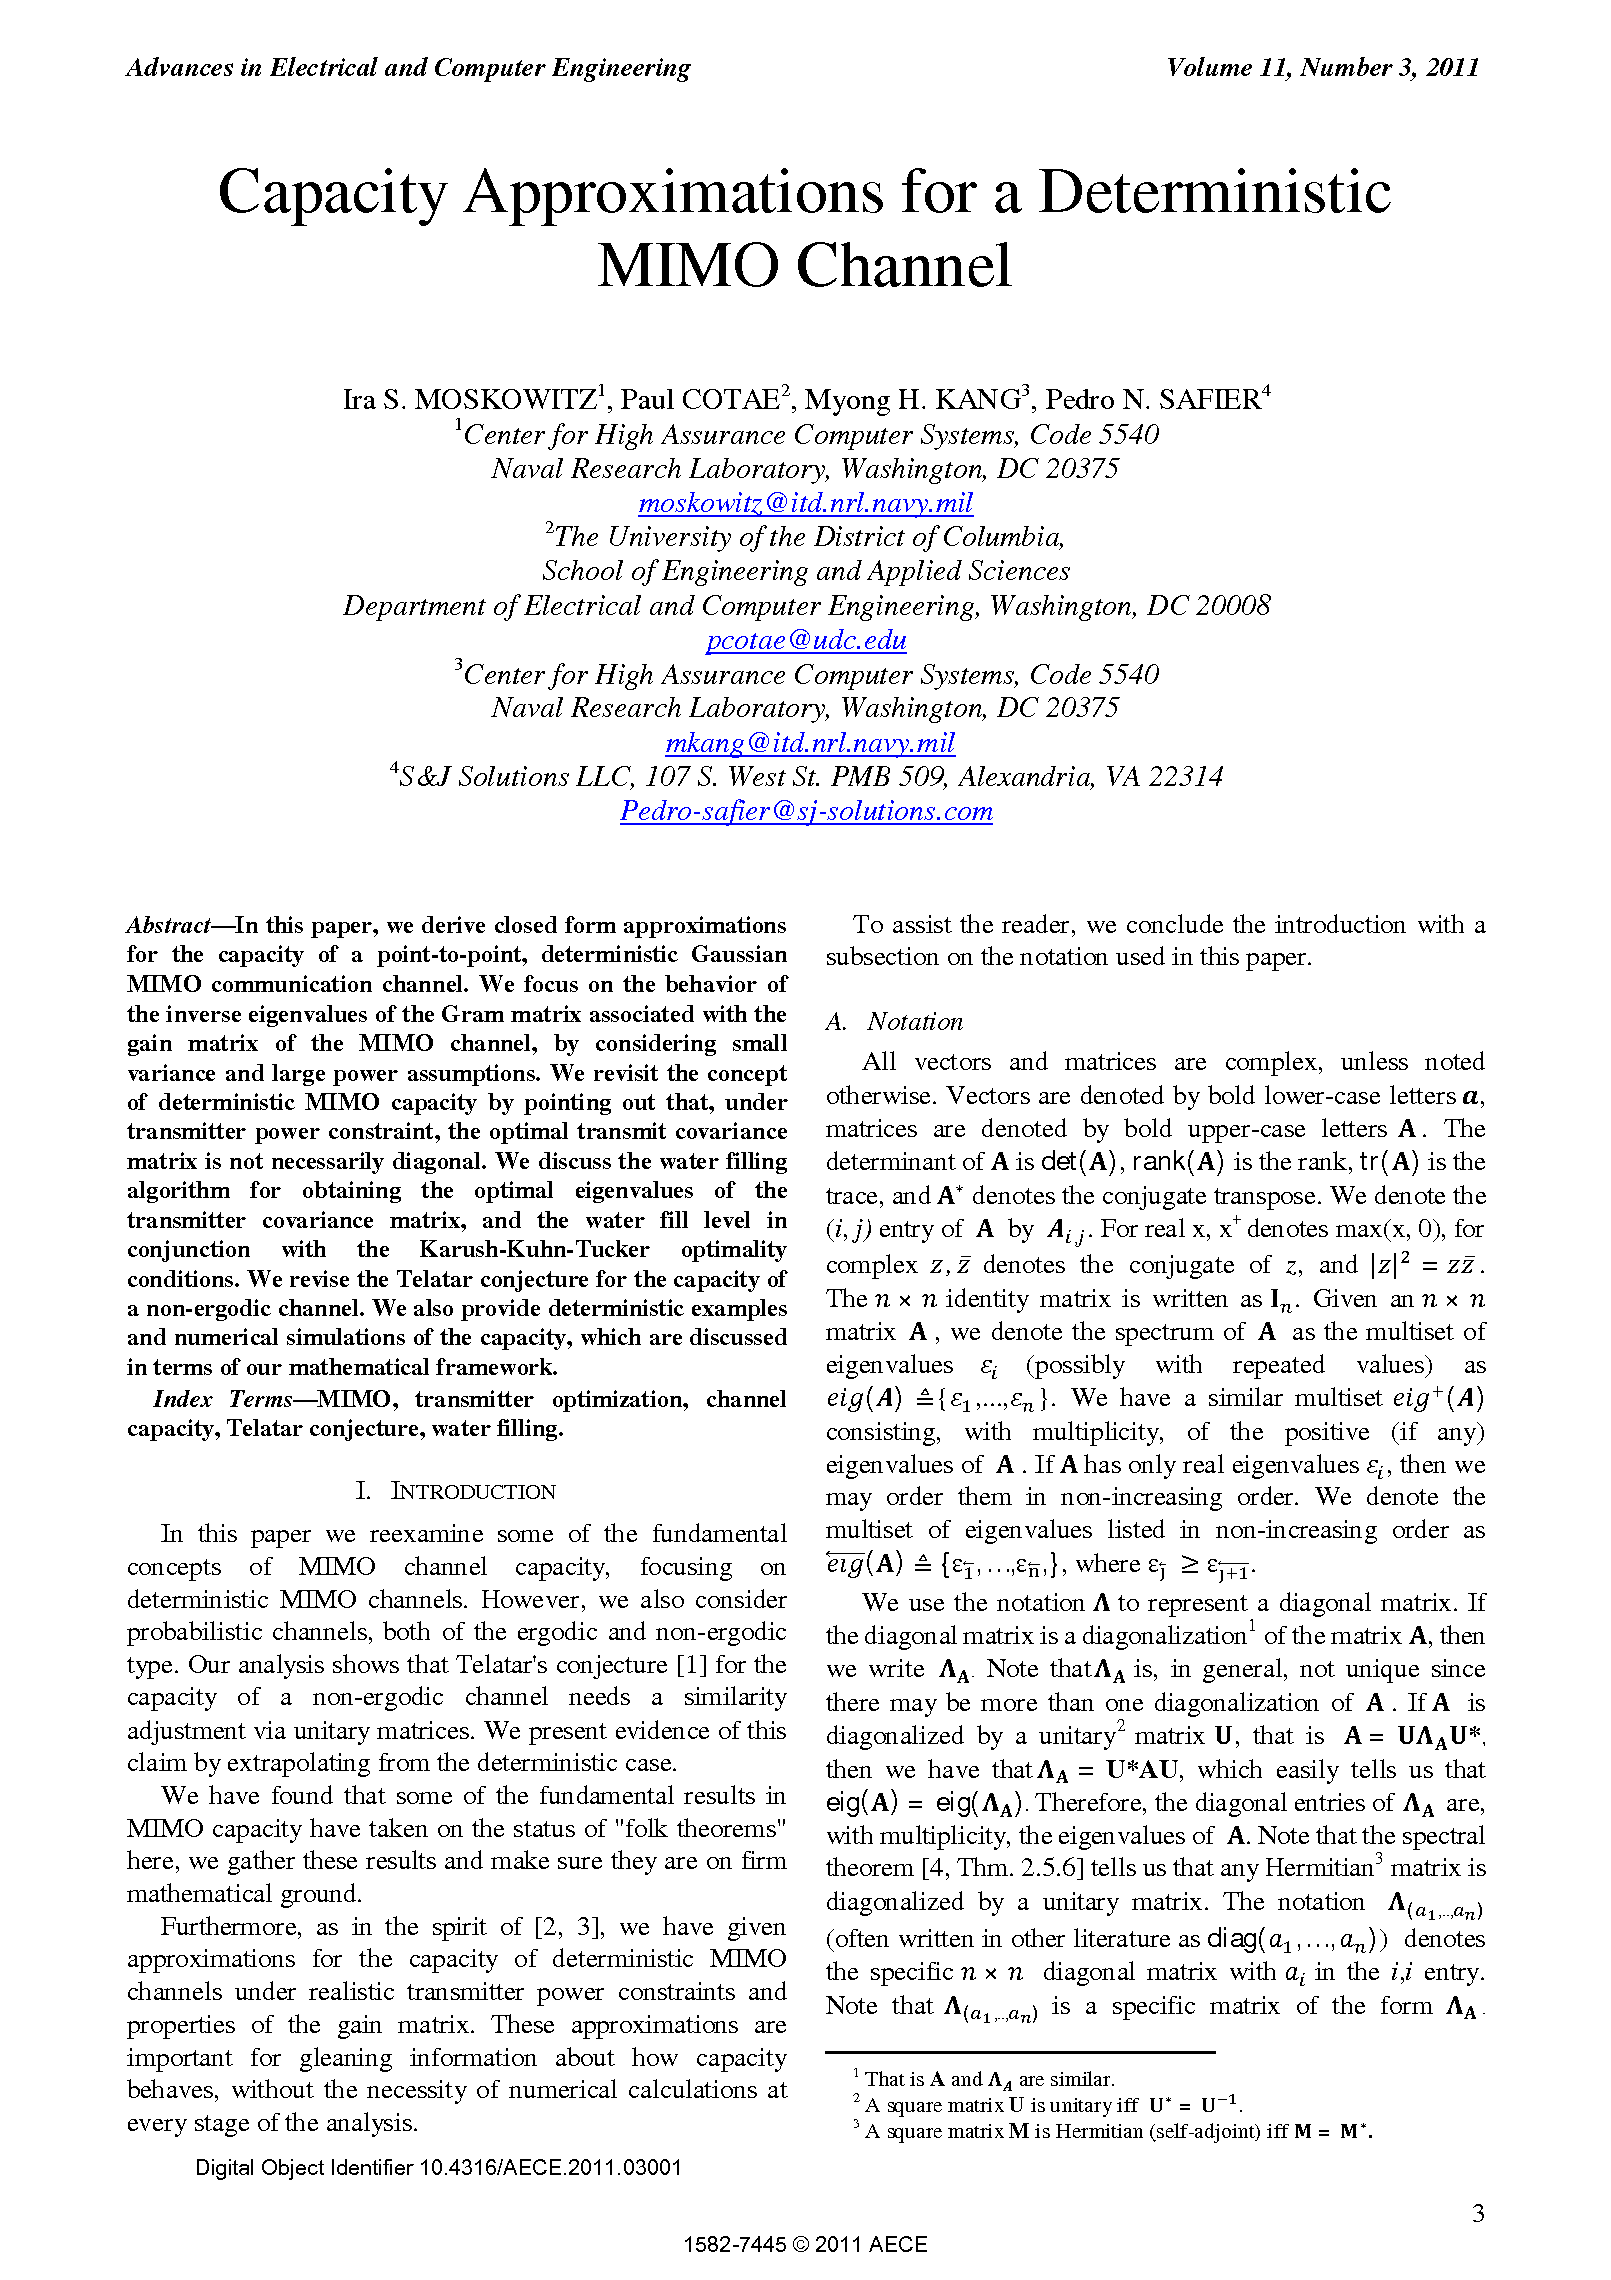 PDF Quickview for paper with DOI:10.4316/AECE.2011.03001